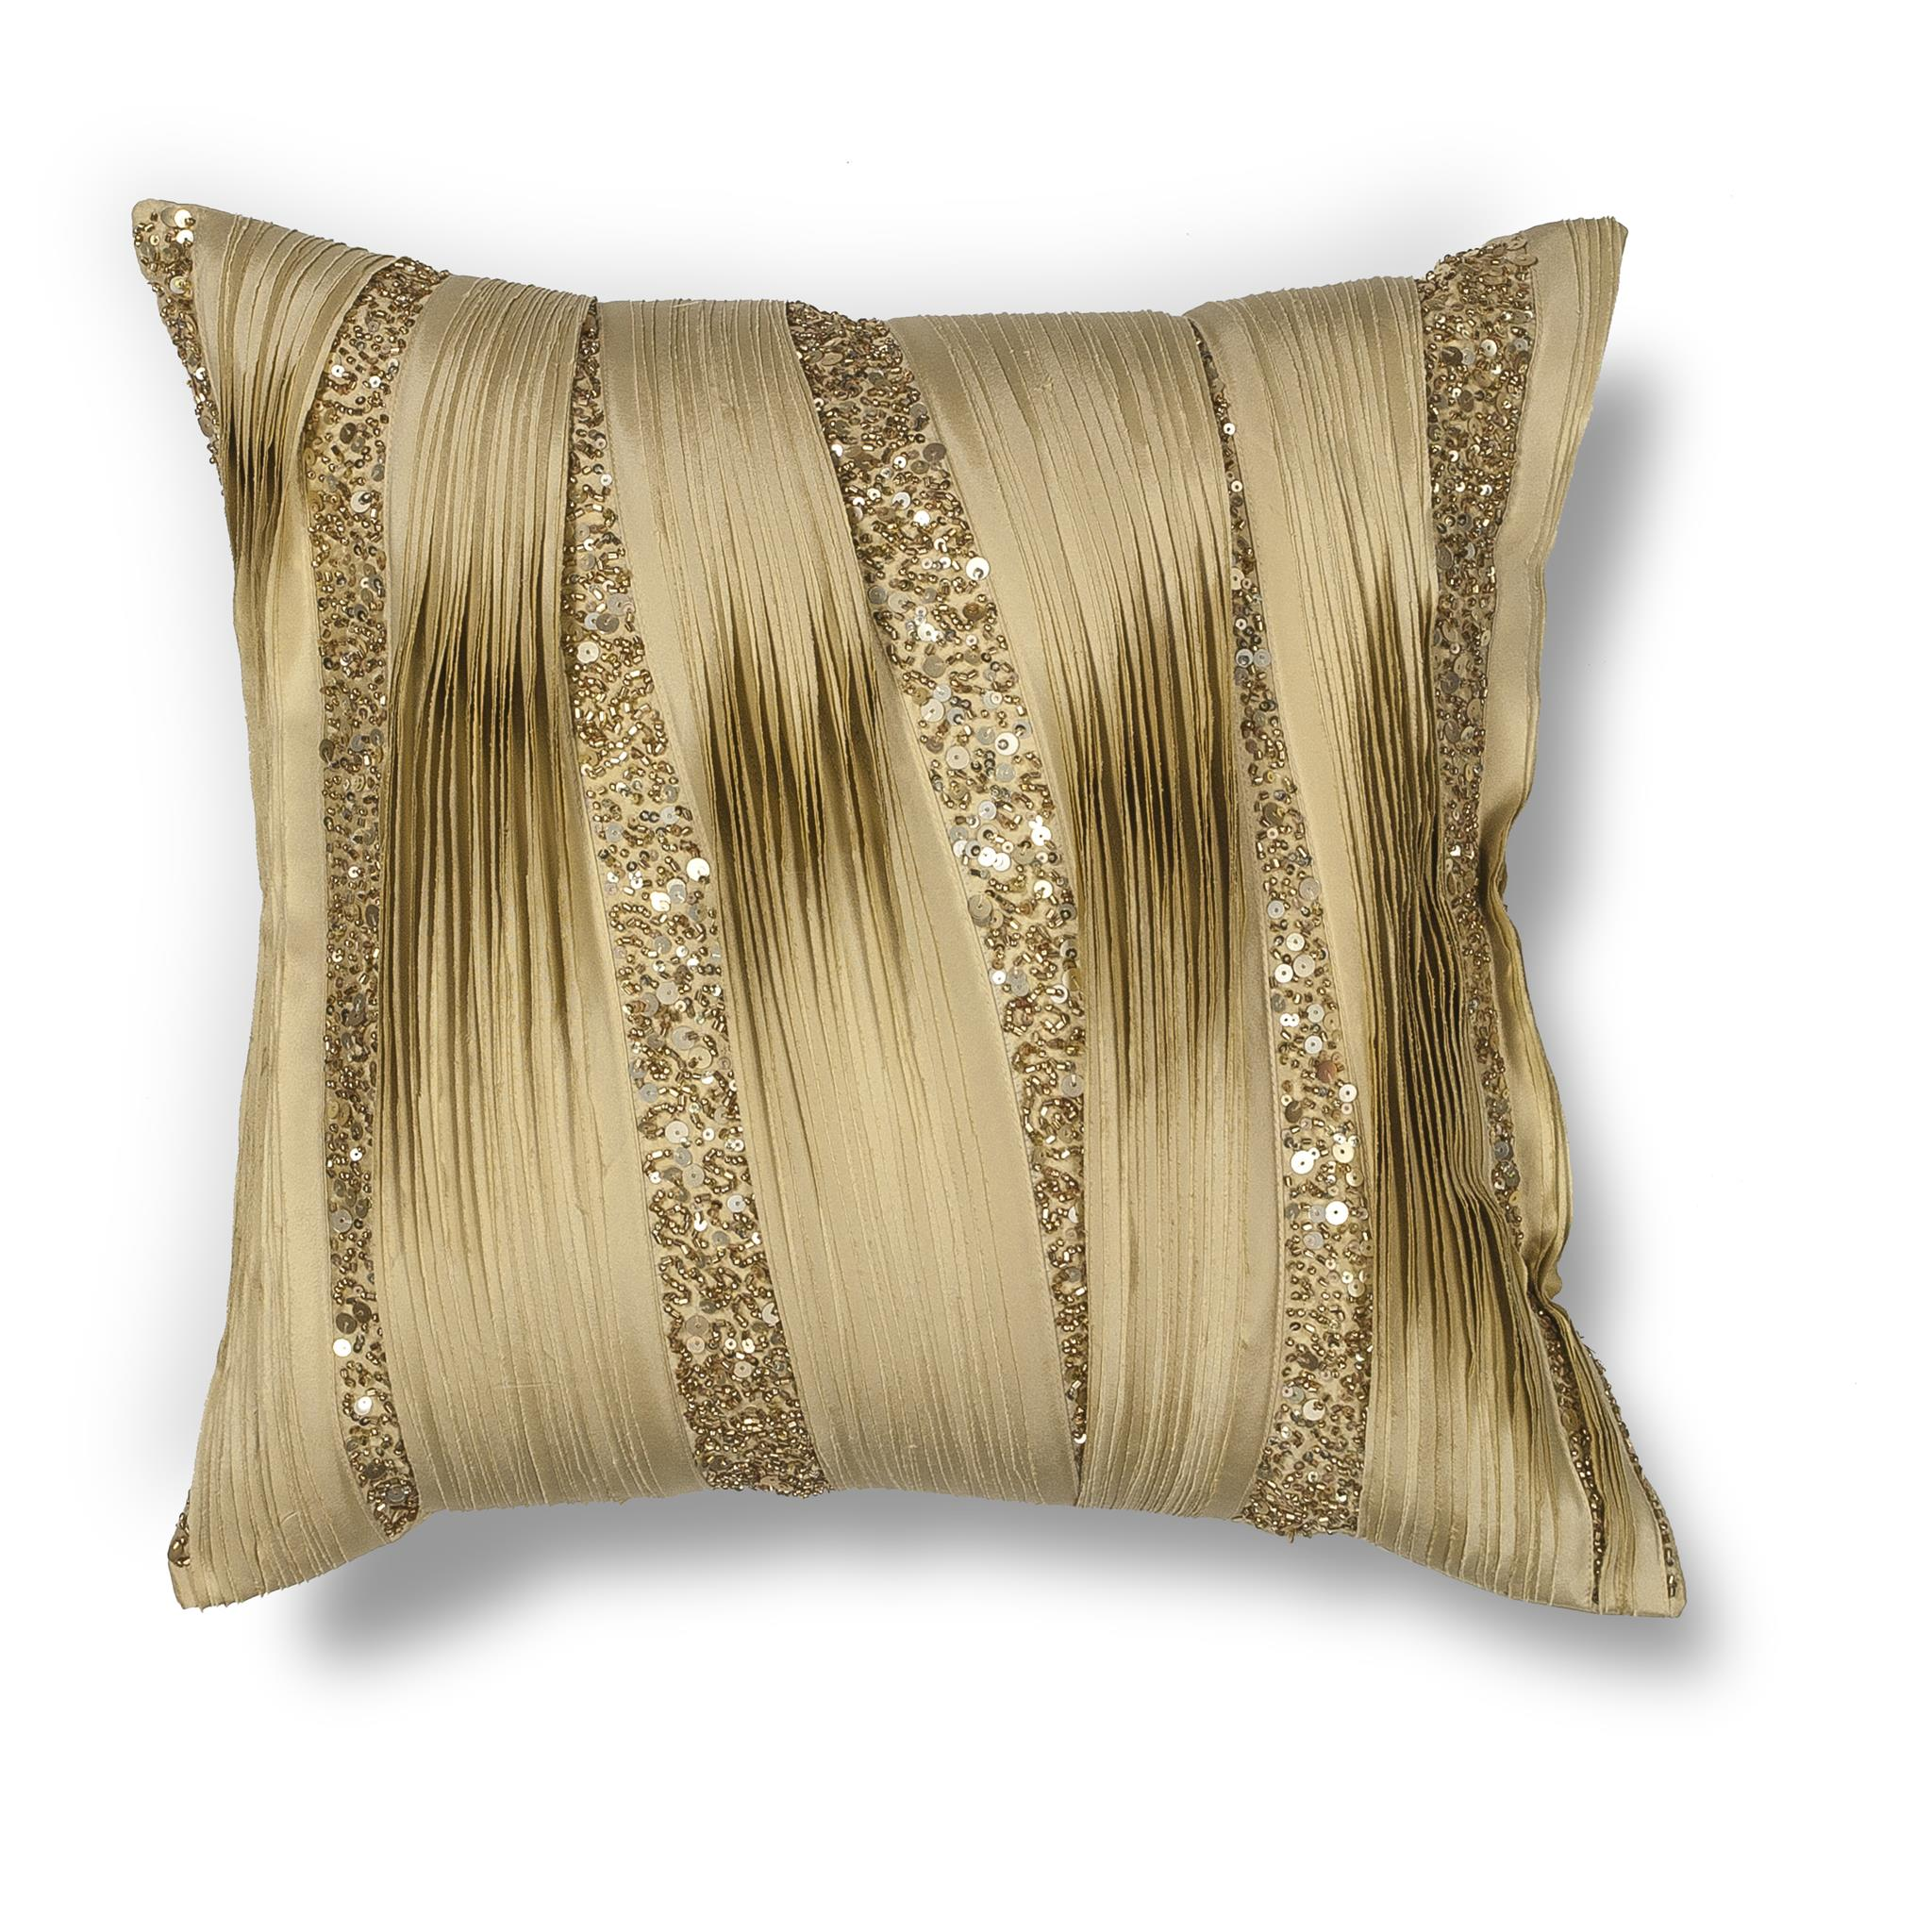 L181 Gold Ruffles Pillow